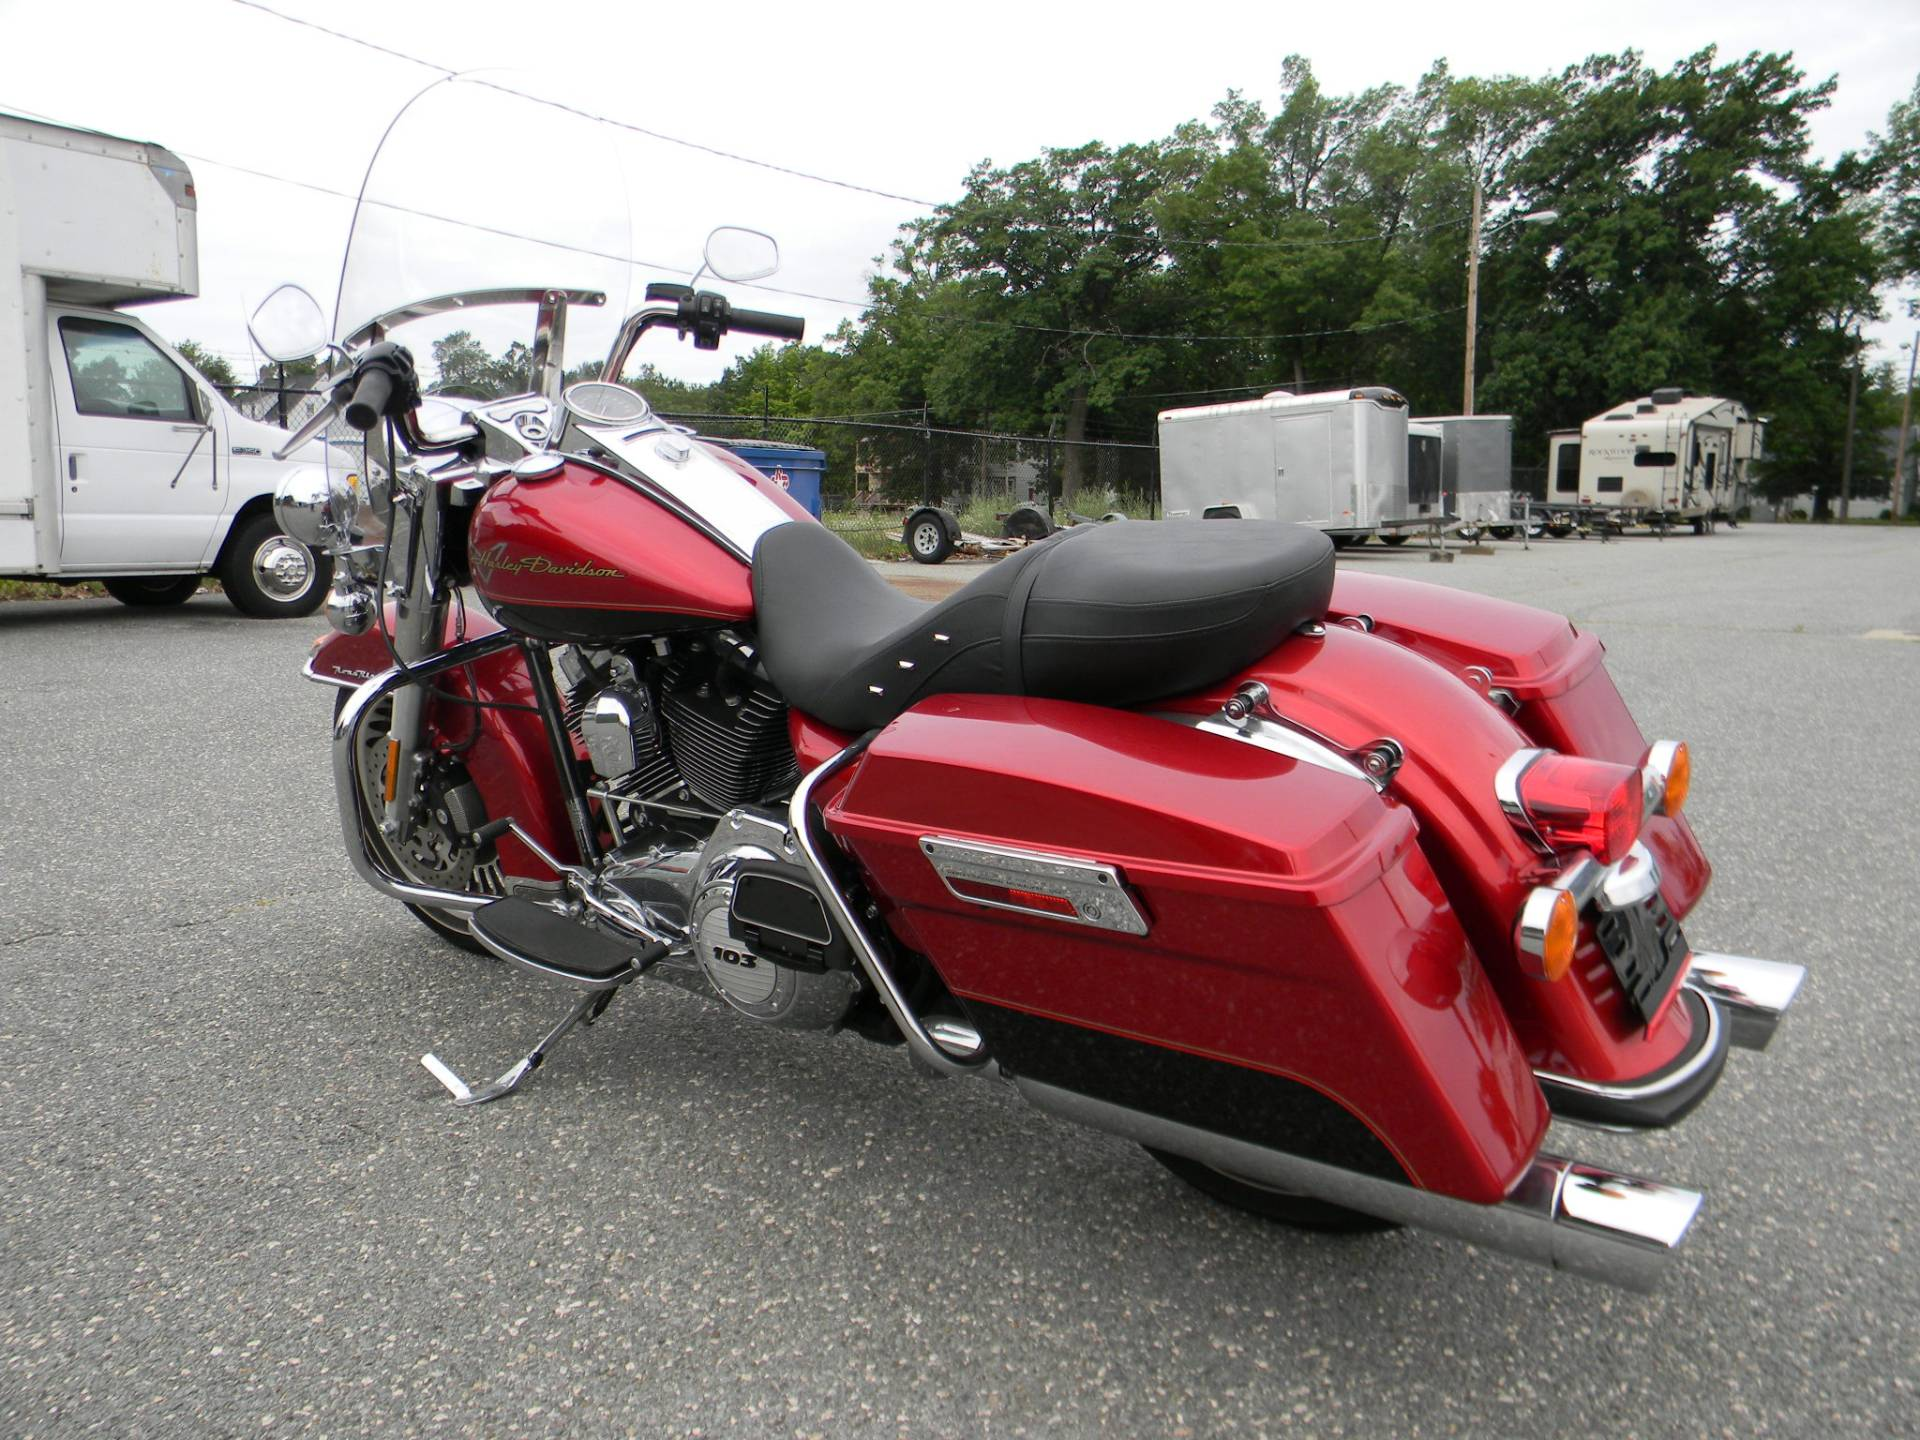 2012 Harley Davidson Road King Motorcycles Springfield Red In Massachusetts